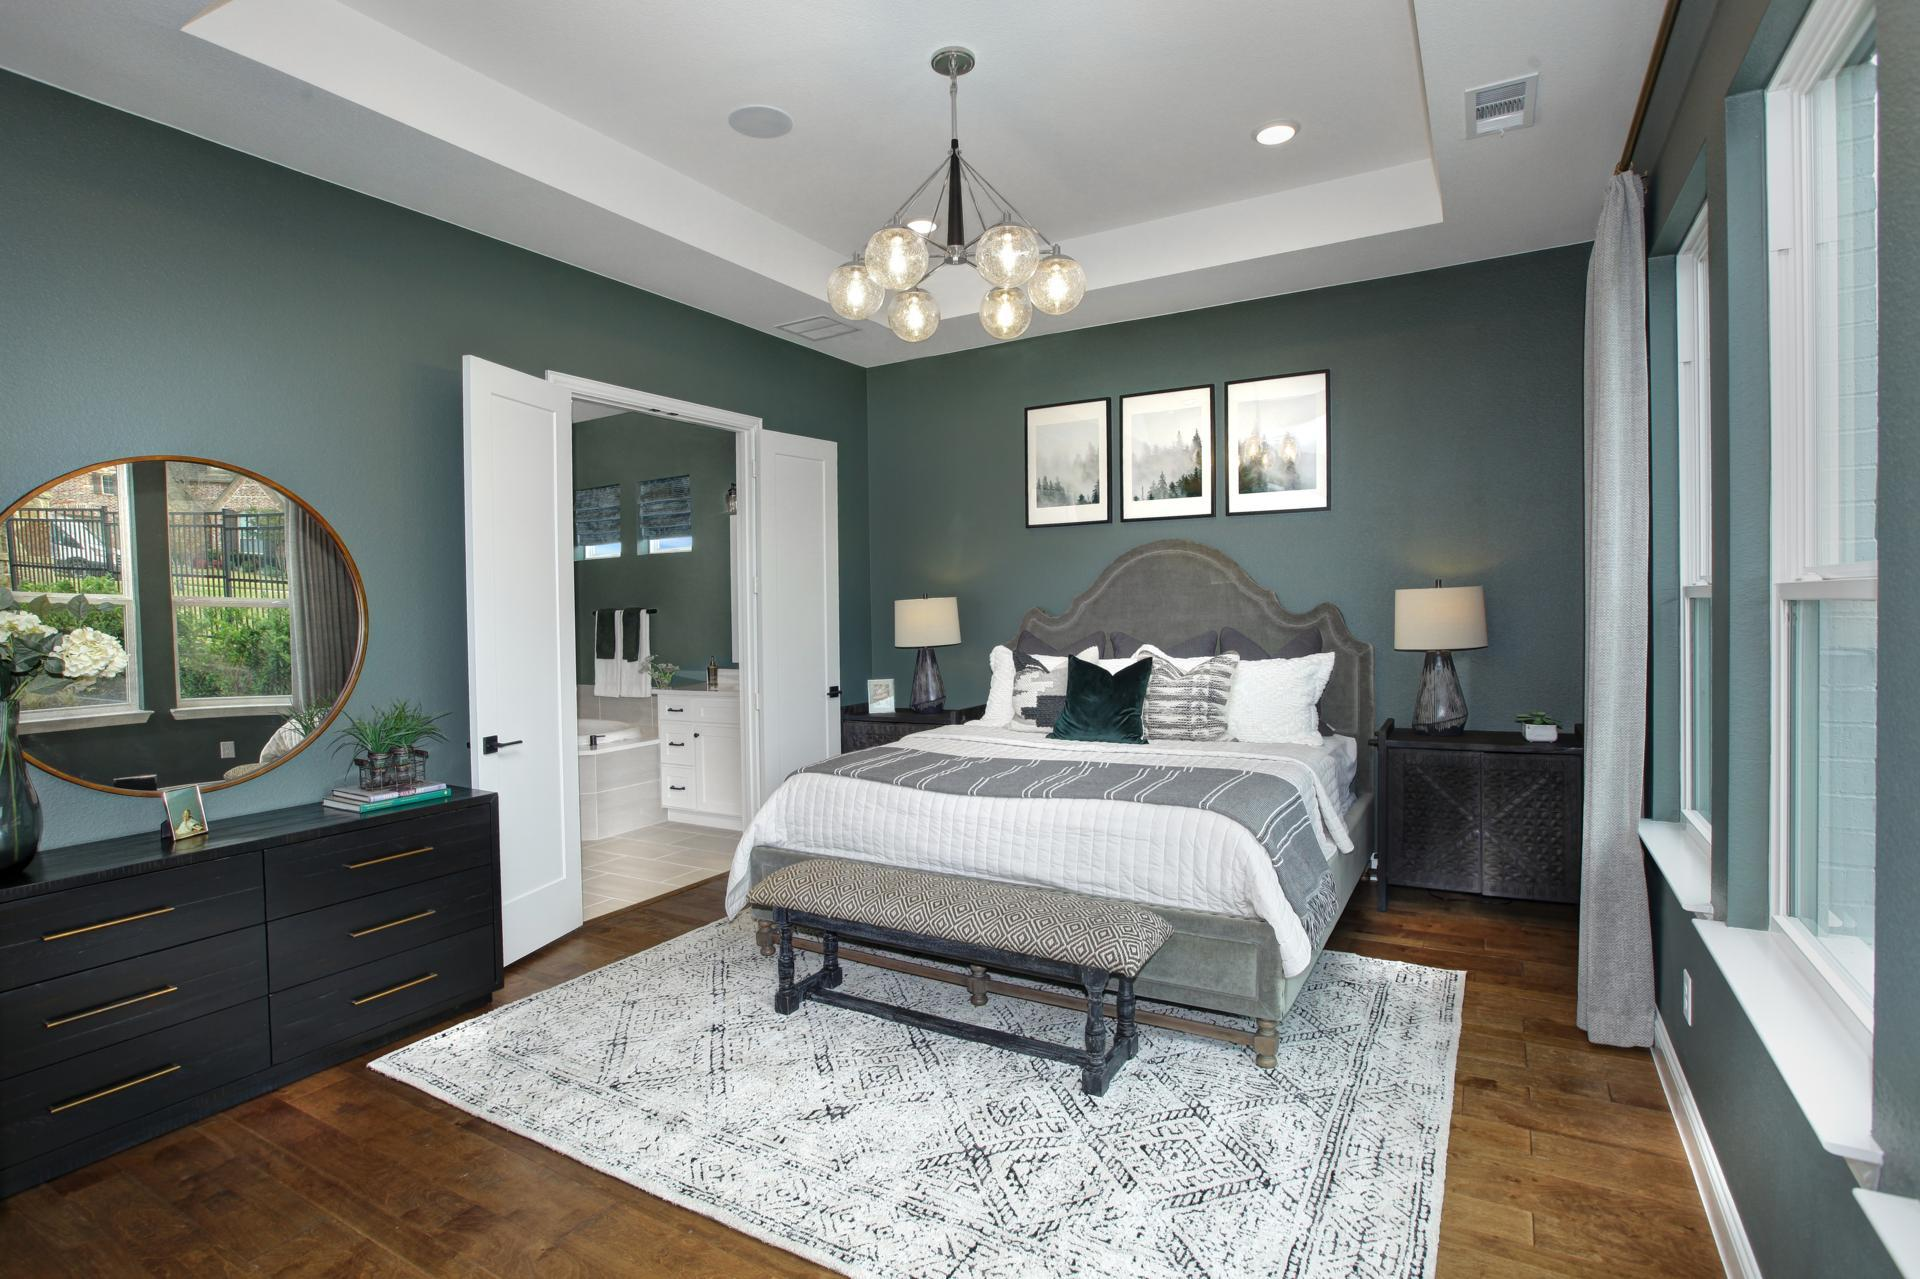 Bedroom featured in the Brynlee By Drees Custom Homes in Austin, TX